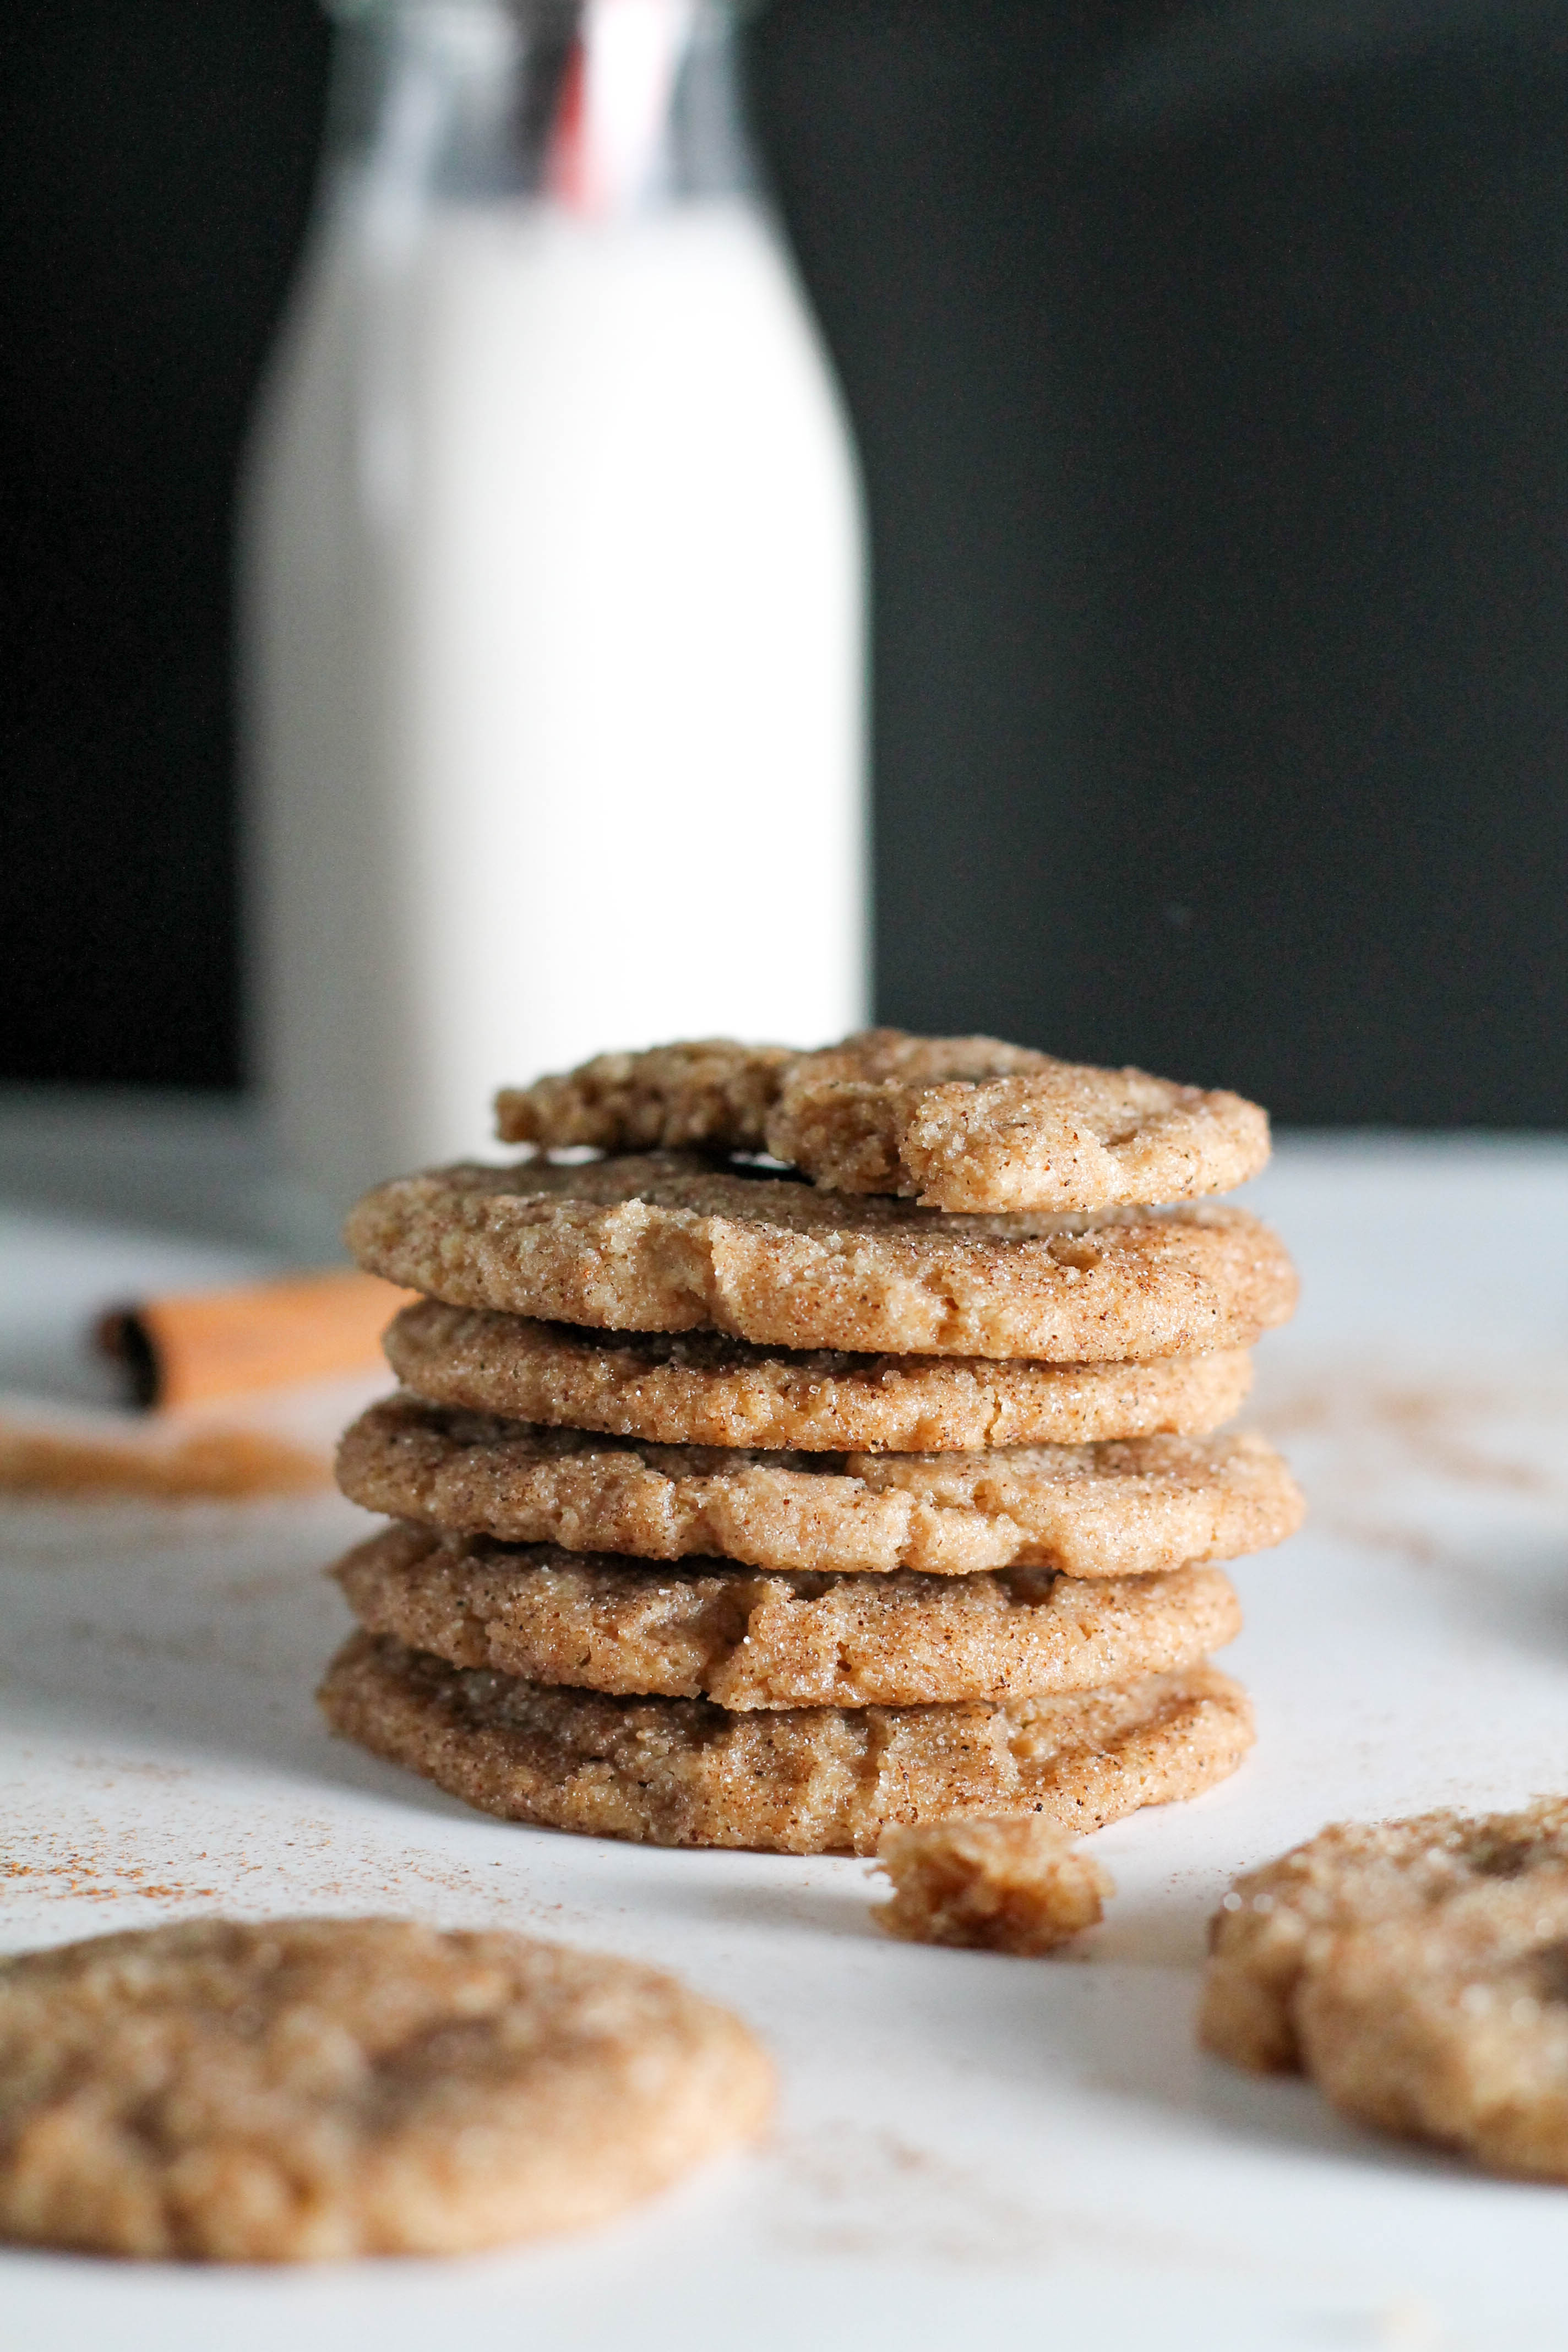 These vegan chai spiced snickerdoodle cookies are the perfect treat. They're filled with flavor, chai spices, and sweetness. Dunk them in some milk, make an ice cream sandwich out of them, or enjoy them on their own- the possibilities are endless.